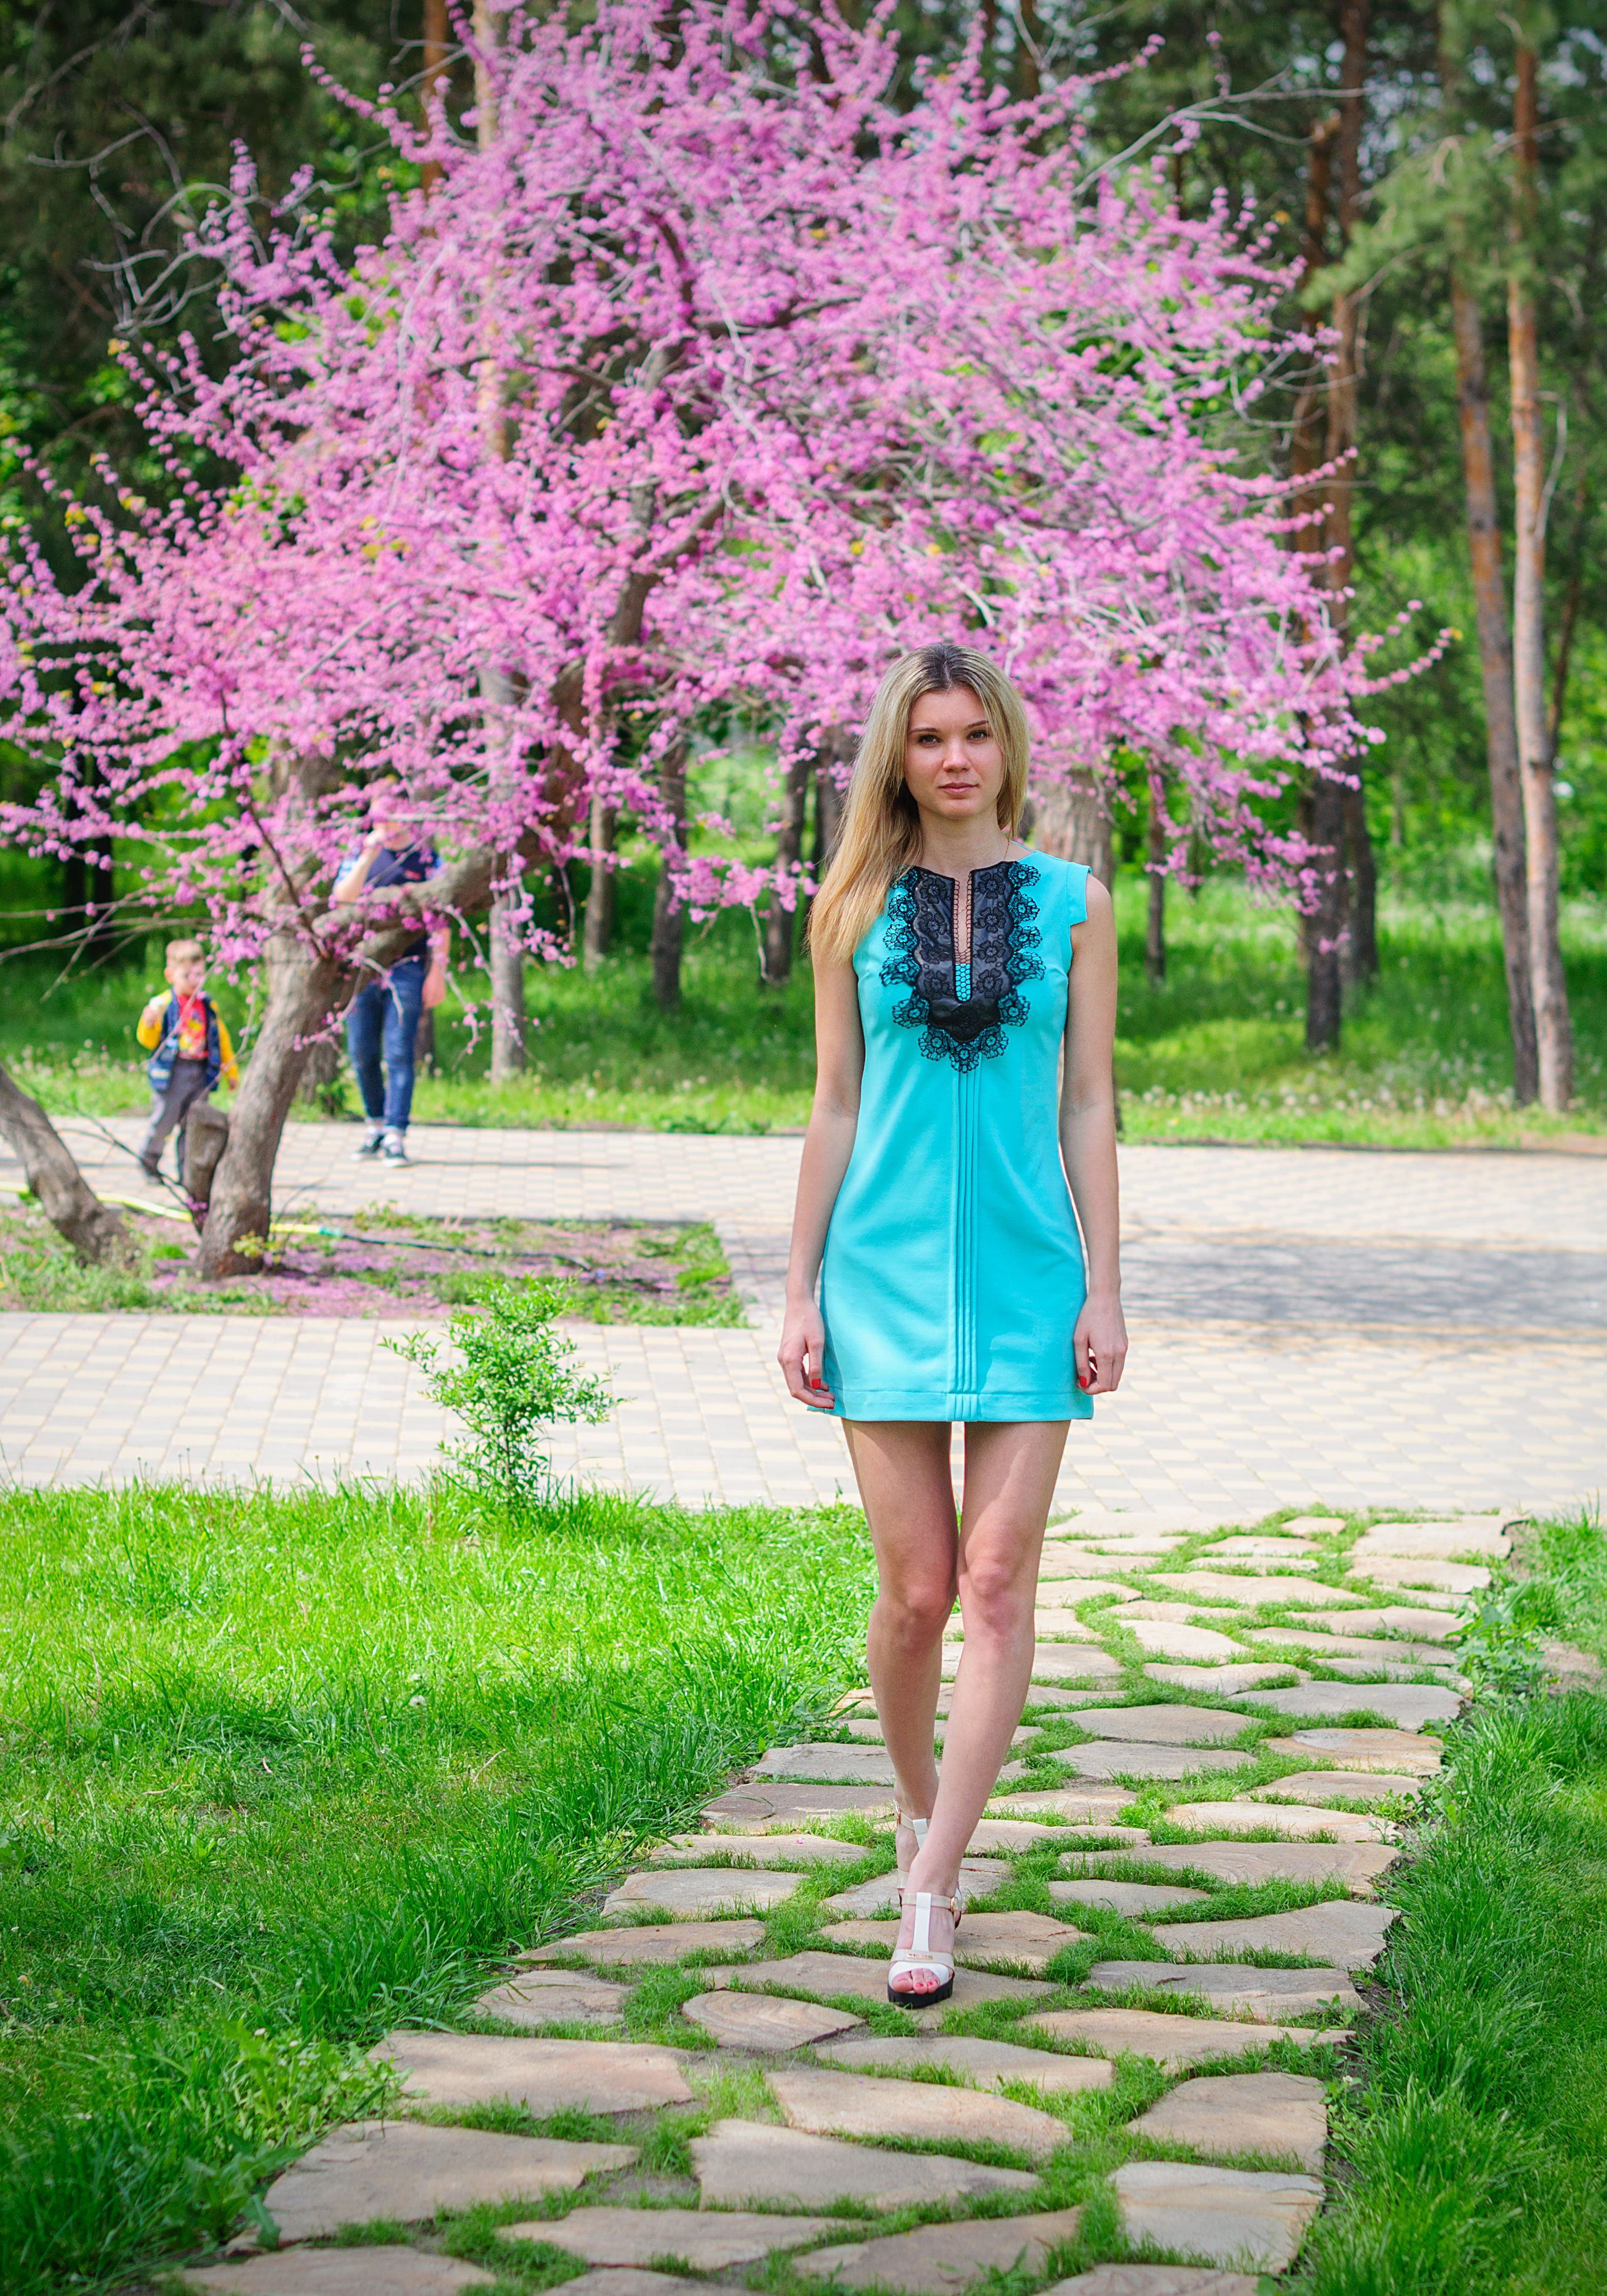 tree, grass, full length, park - man made space, lifestyles, flower, leisure activity, casual clothing, young women, young adult, footpath, front view, growth, person, standing, looking at camera, park, nature